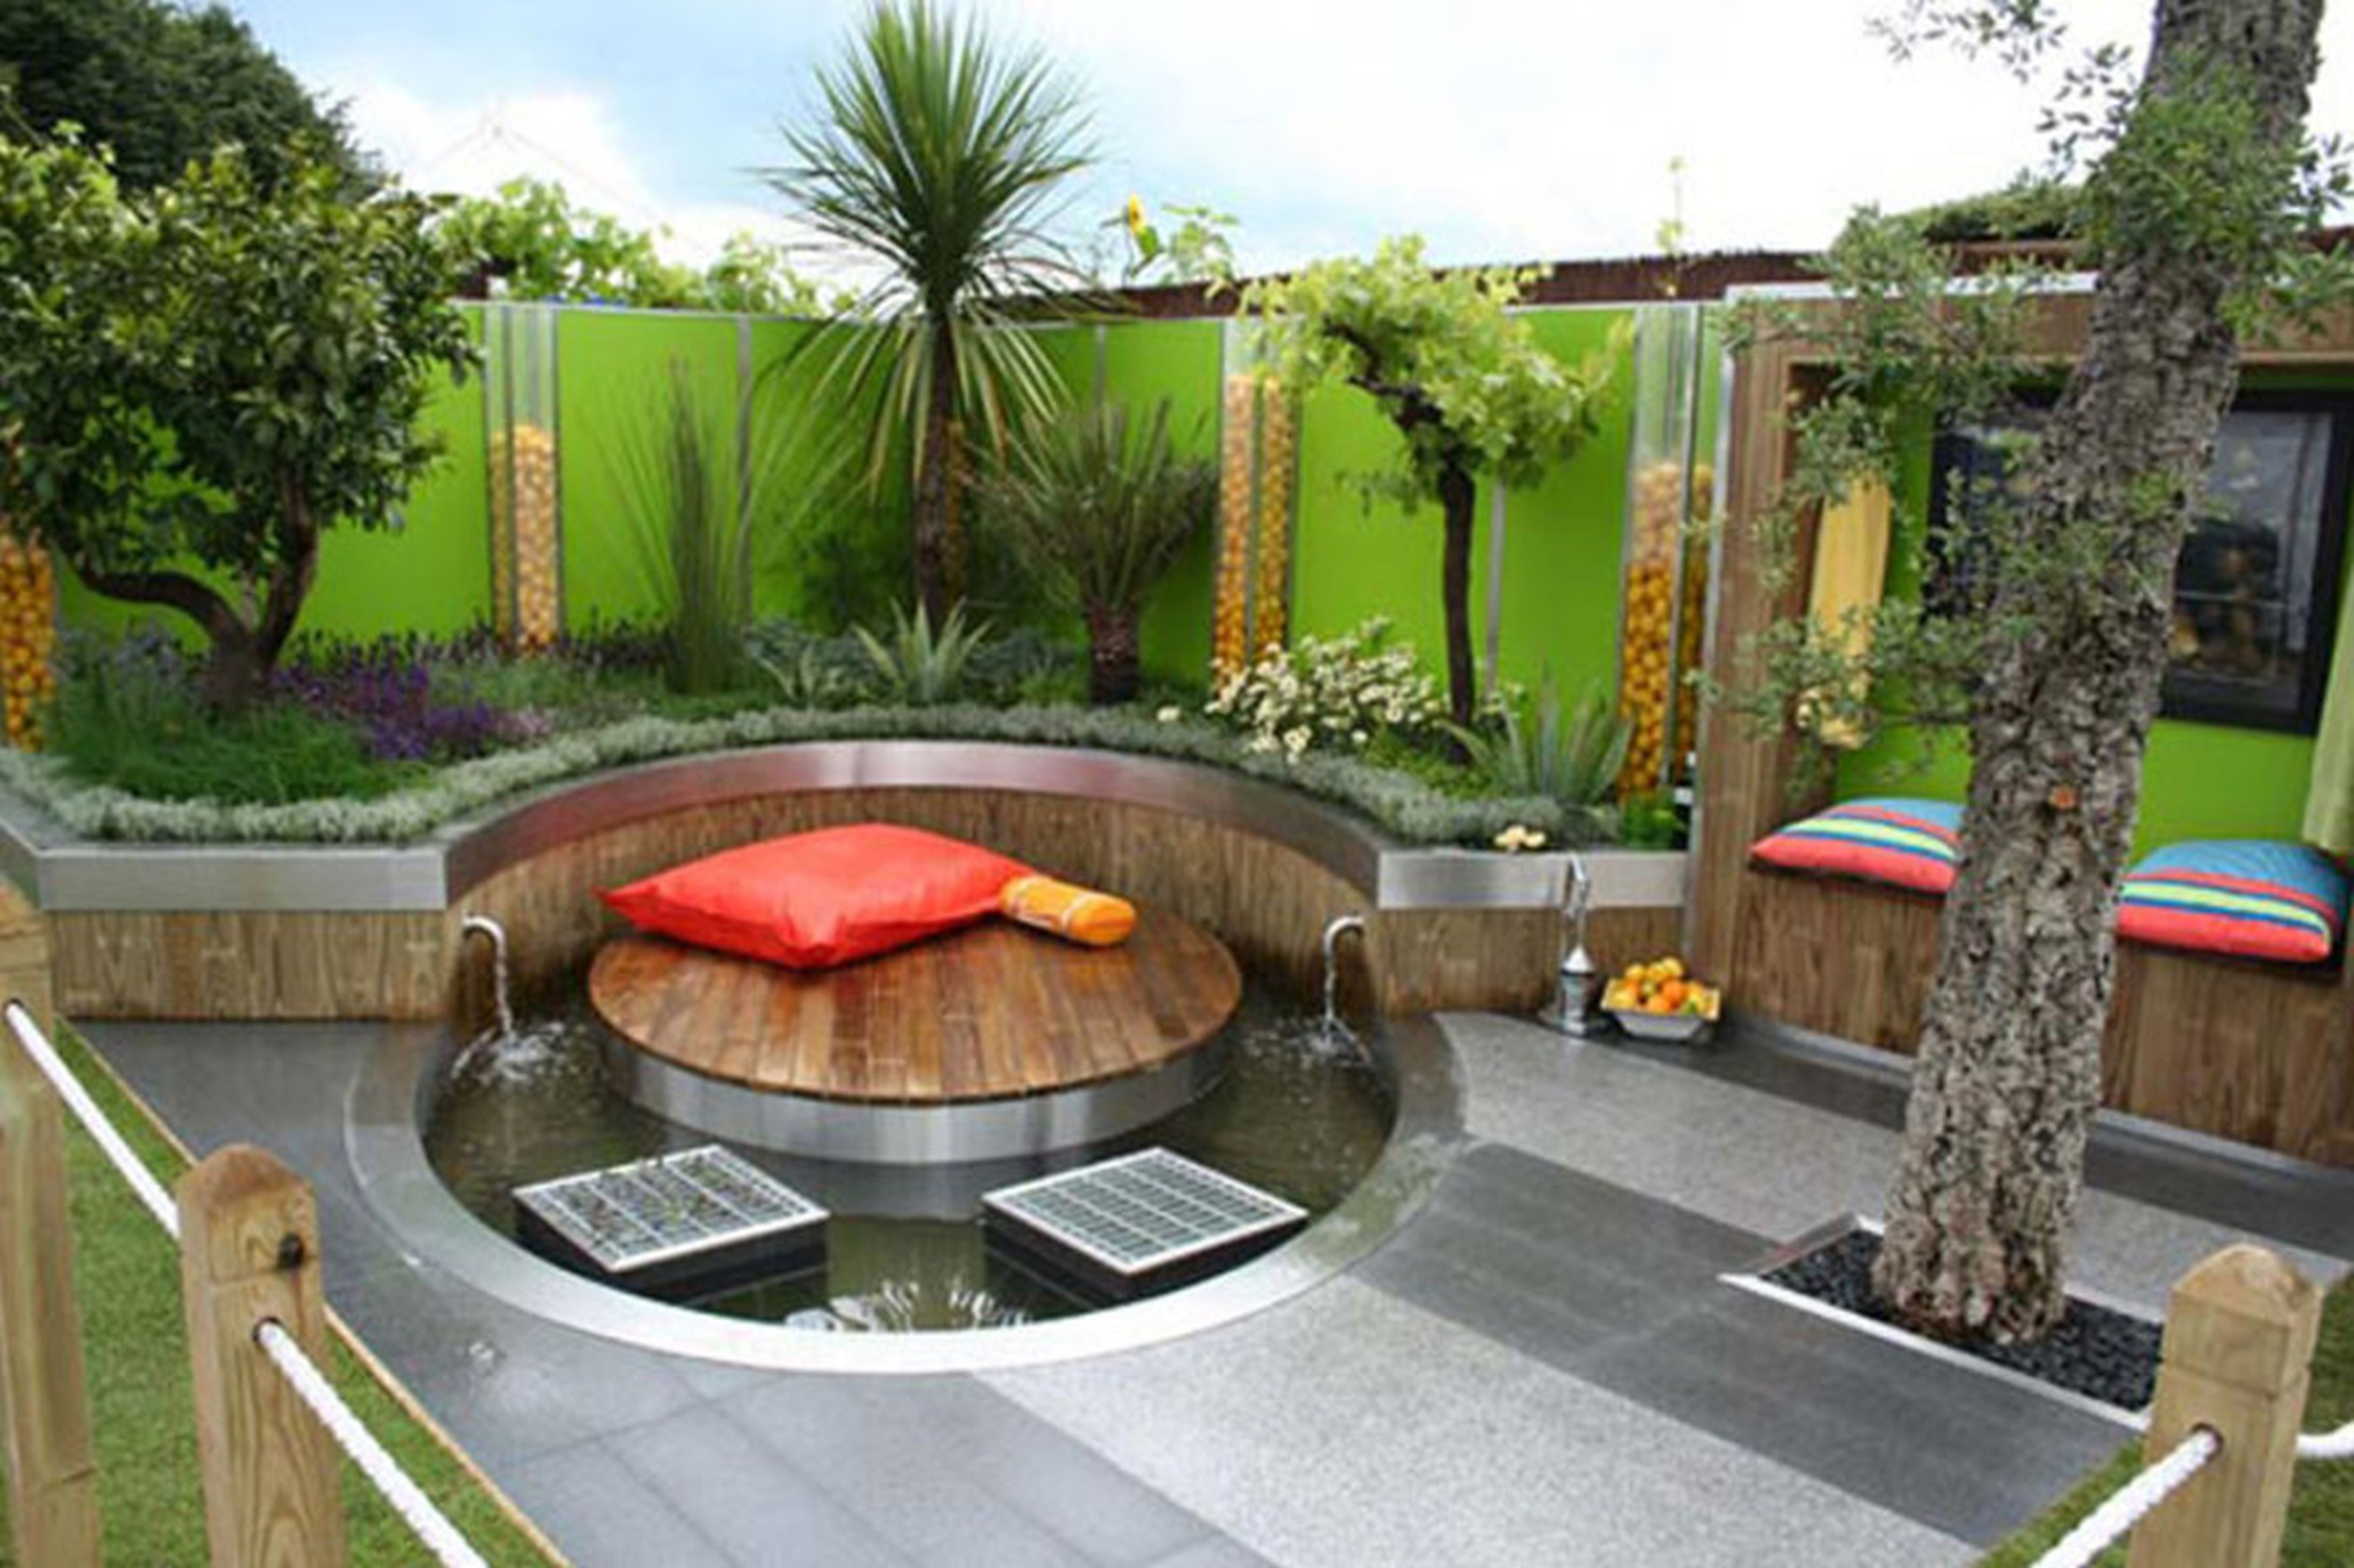 Great Backyard Ideas On A Budget Garden Cheap And Easy Small Designs inside 14 Some of the Coolest Concepts of How to Improve Great Backyard Ideas On A Budget